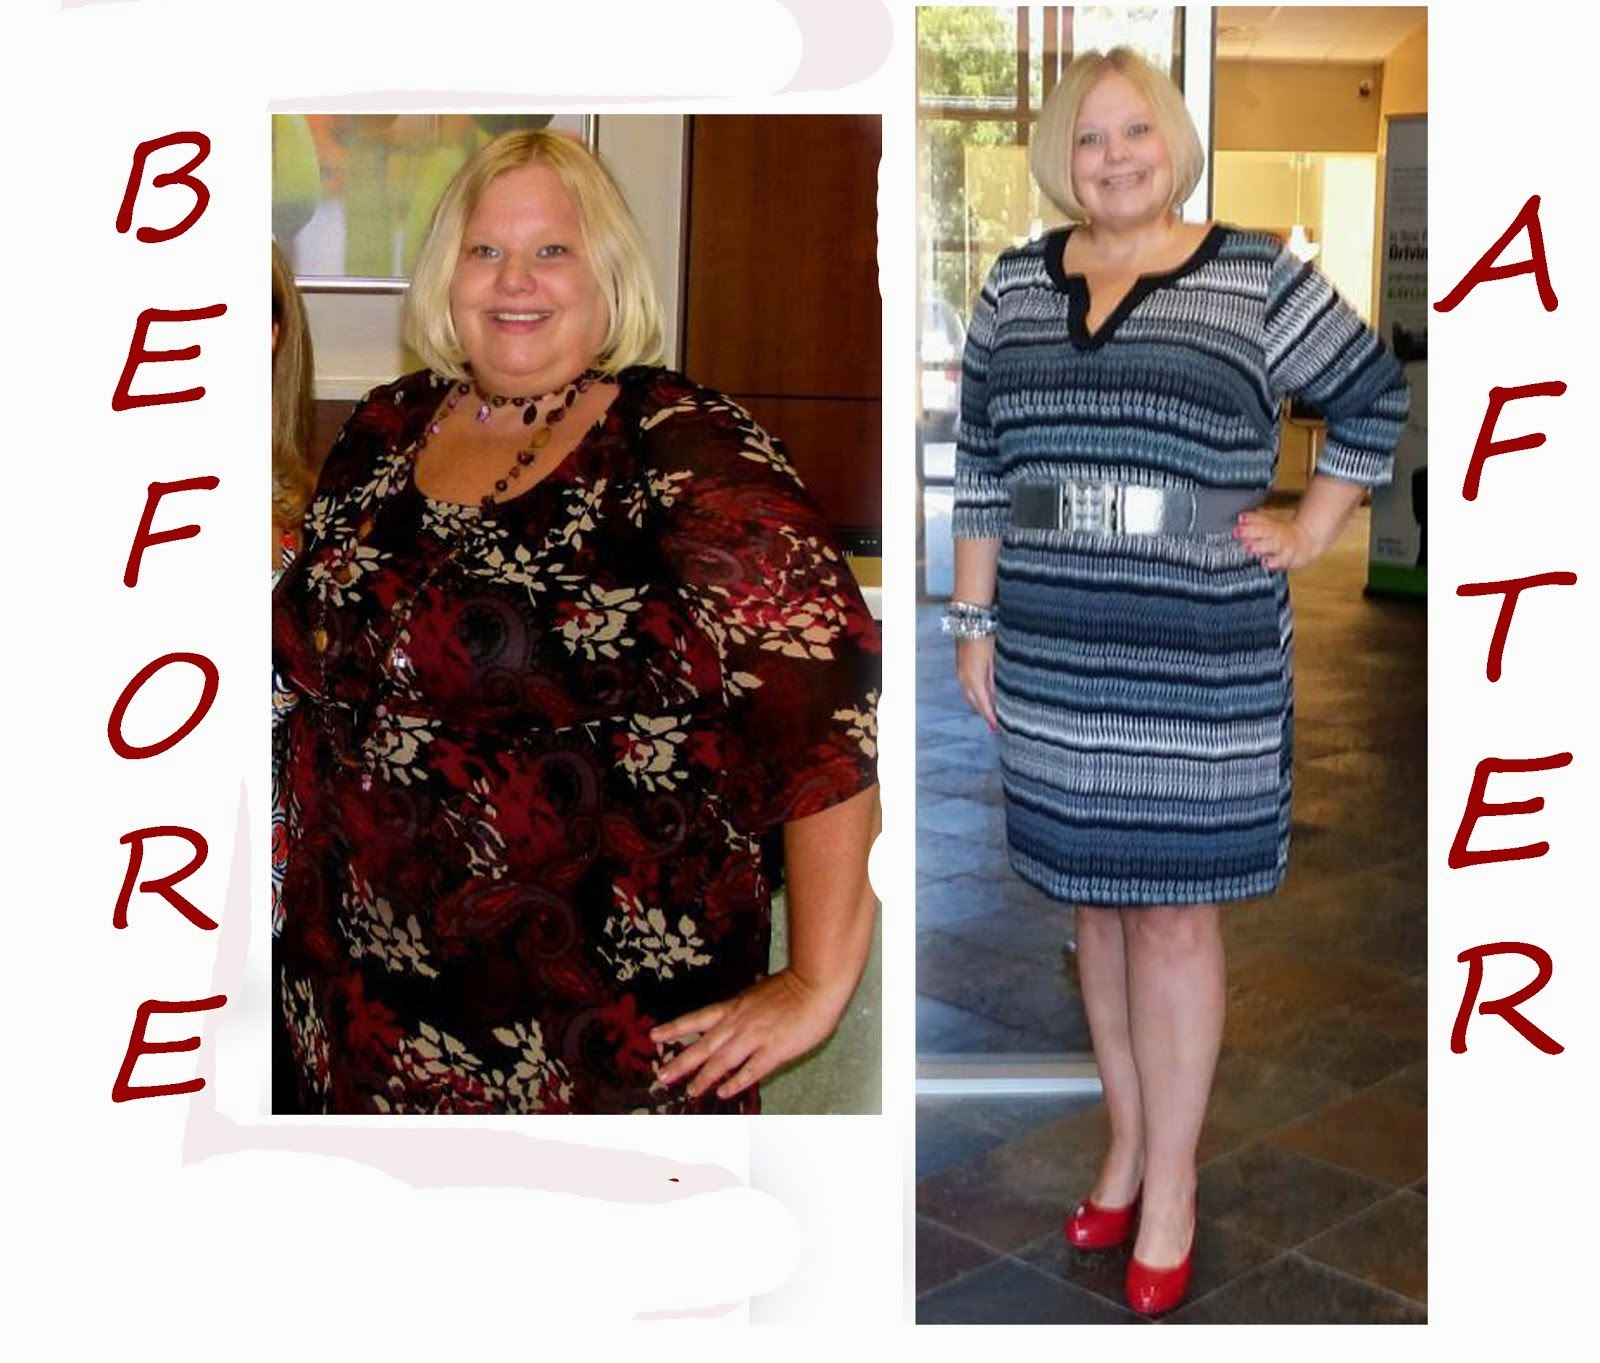 Has been the most amazing weight loss stories